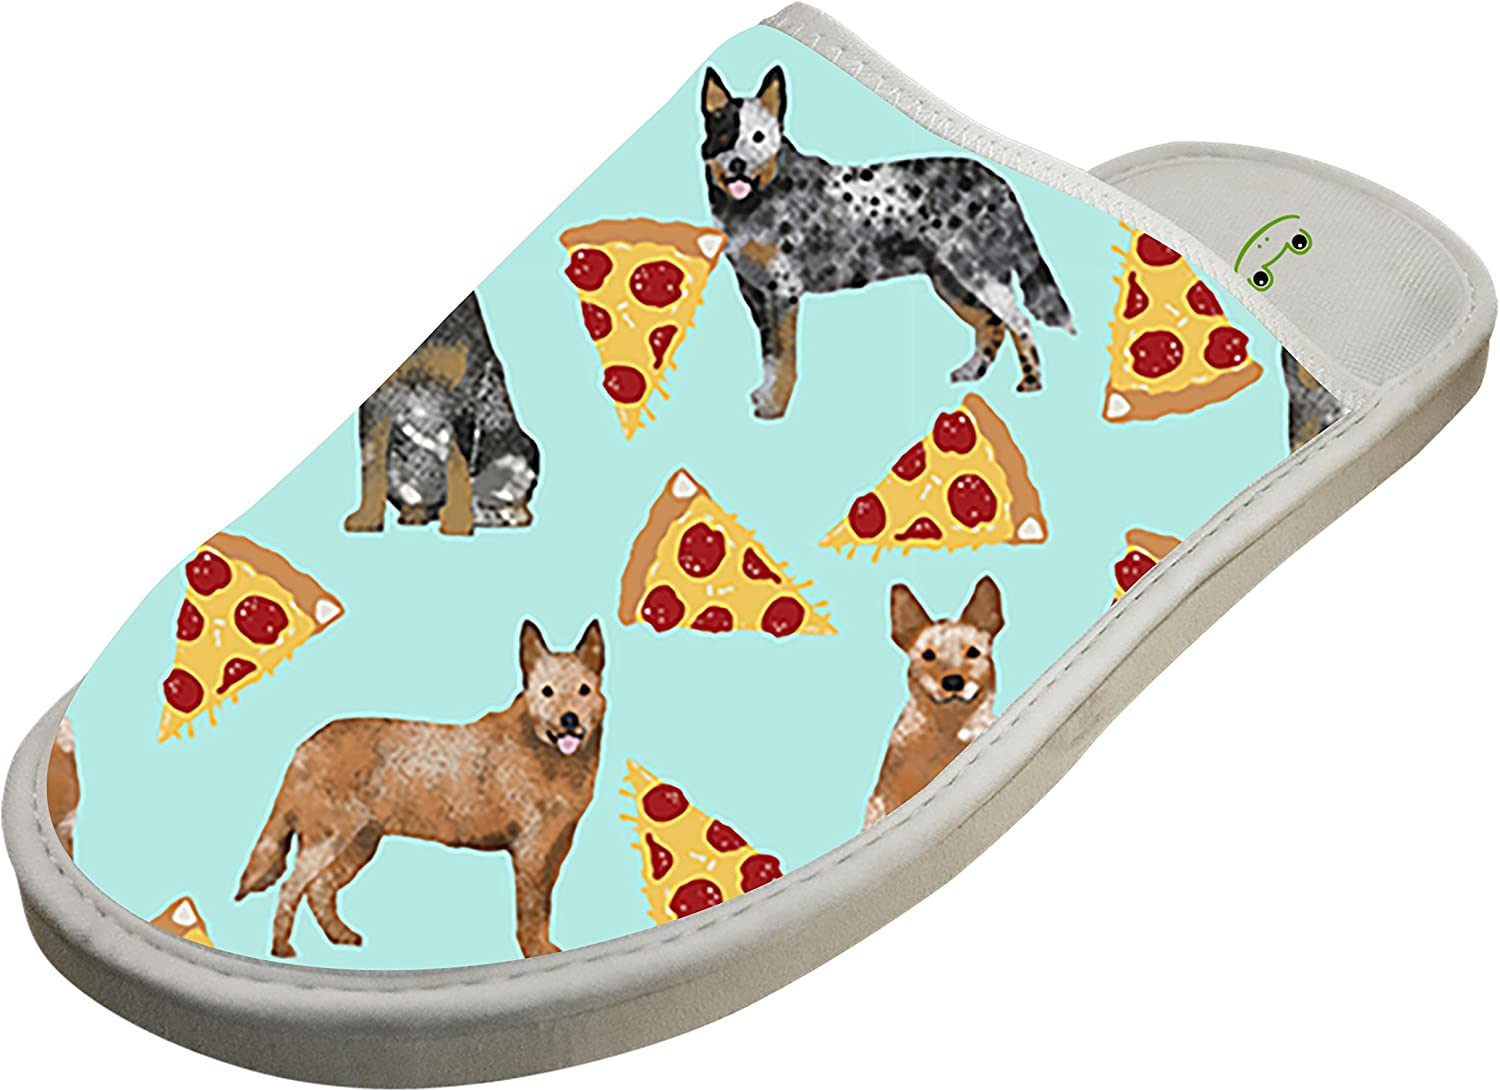 KOUY Puppy And Pizza Closed Toe Cotton Slippers Warm Soft Indoor Shoes Non-watertight